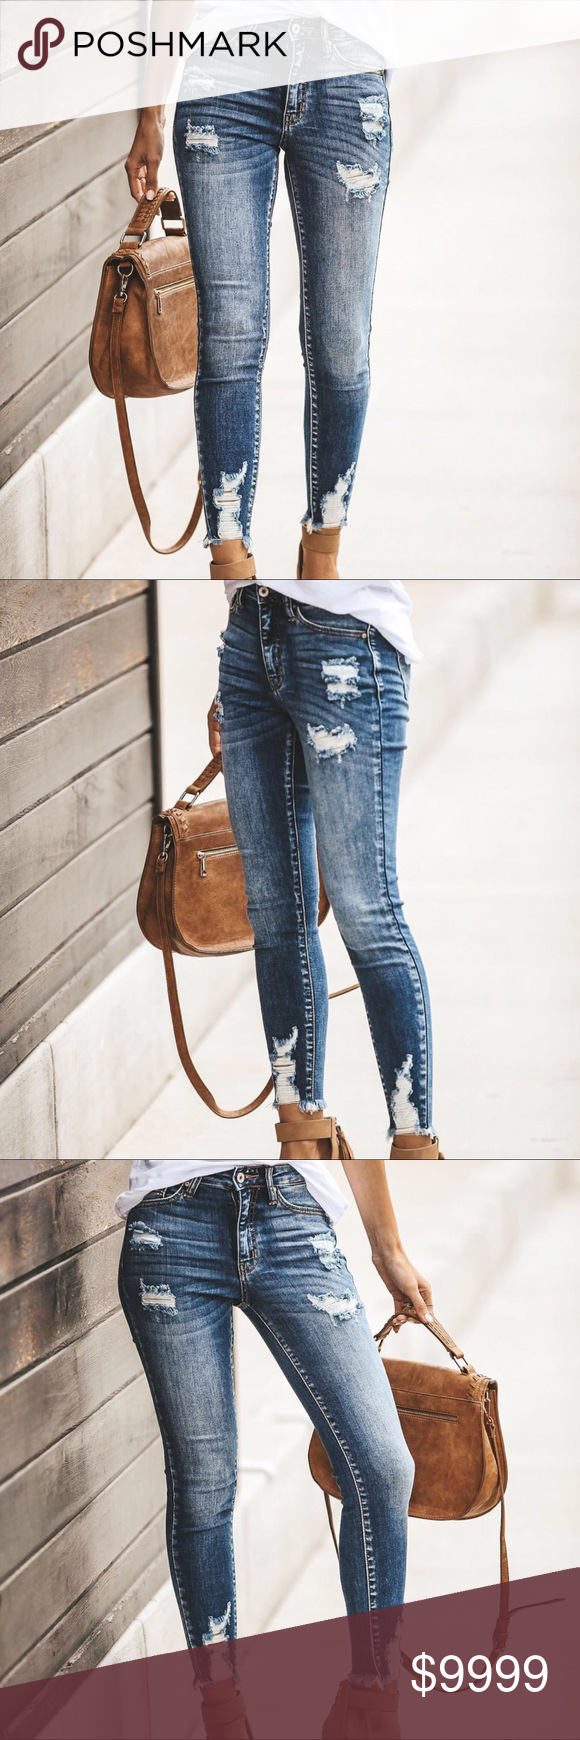 JUST IN‼️ Riley Distressed Skinnies Another amazing pair of destructive skin…